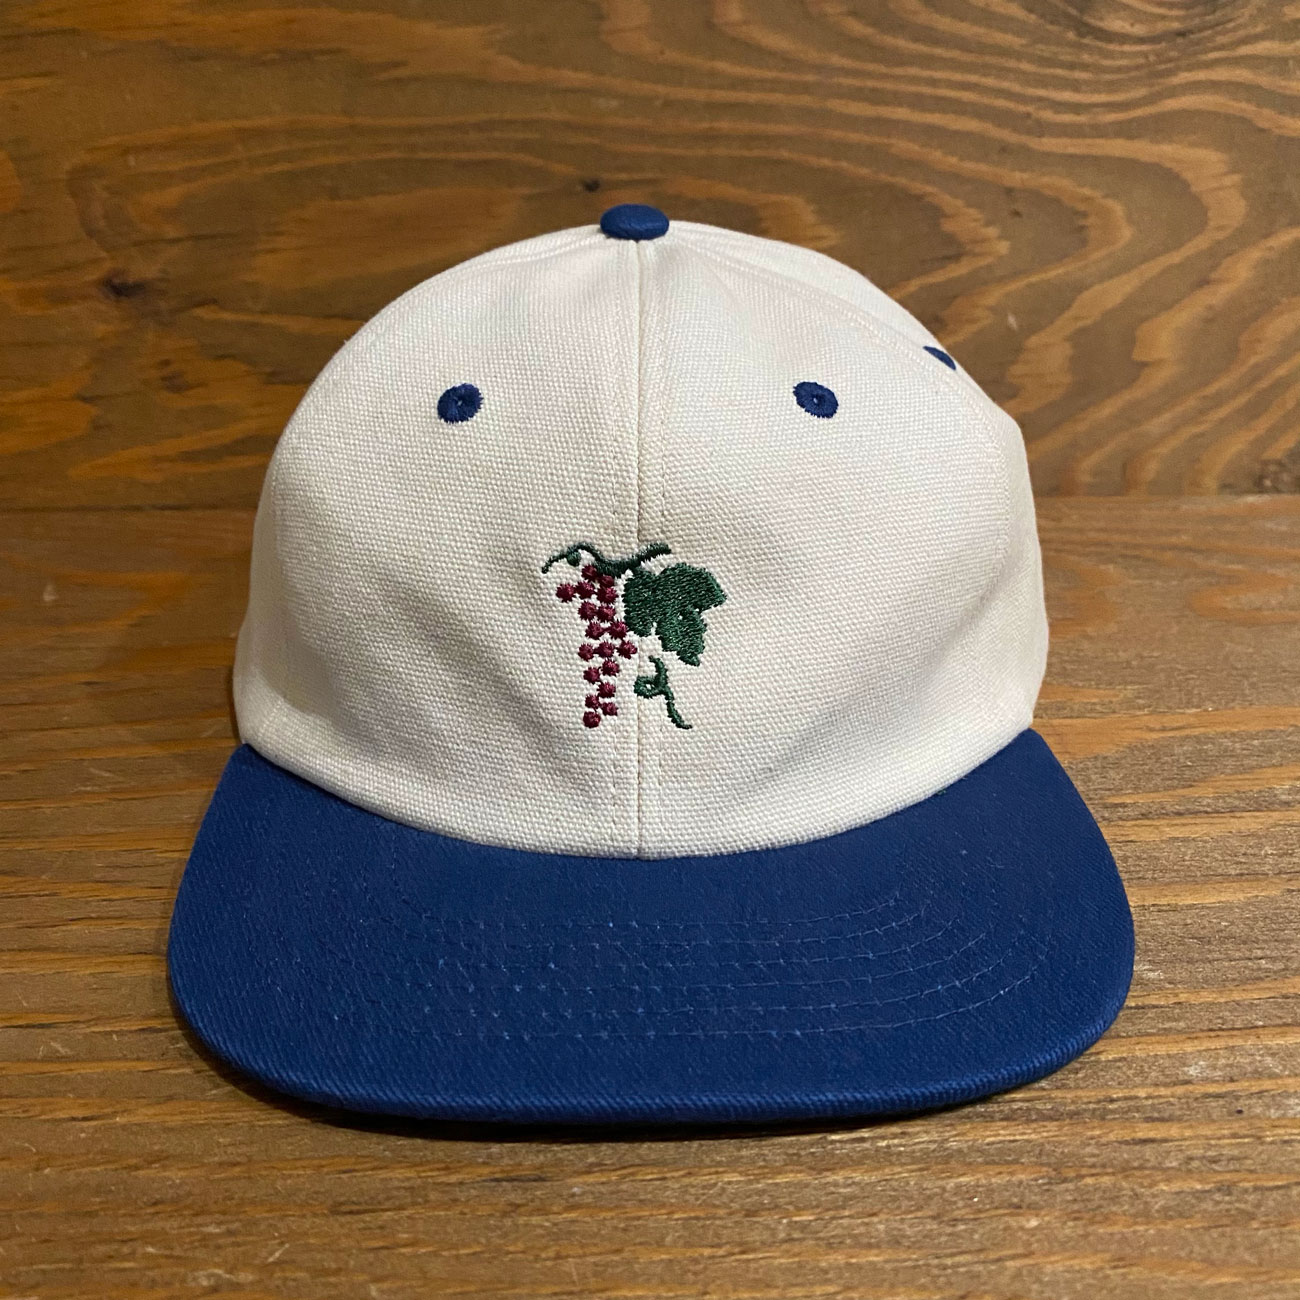 PASS~PORT LIFE OF LEISURE 6PANEL CAP ROYAL/NATURAL